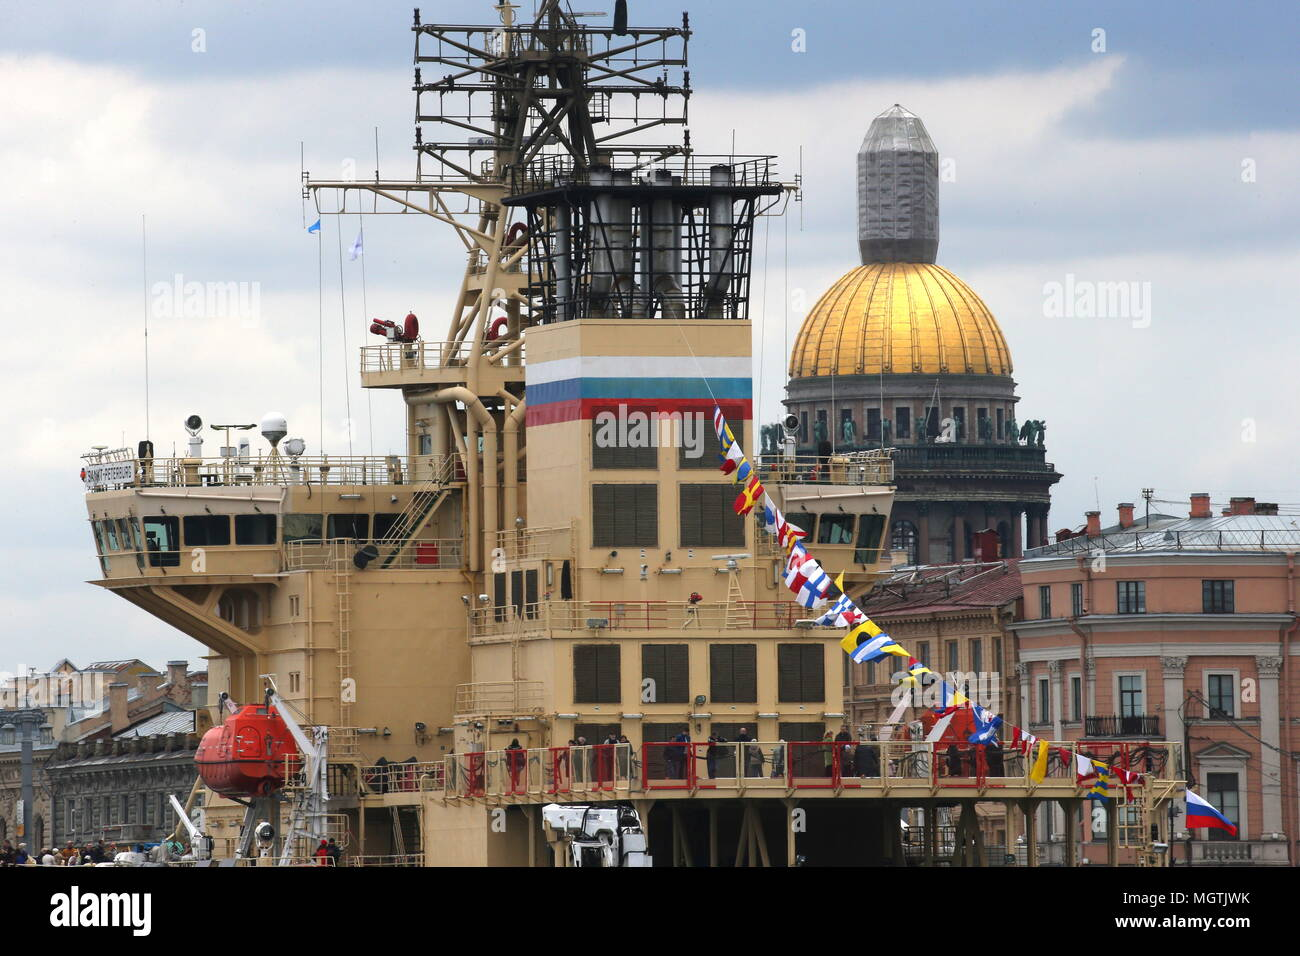 St Petersburg, Russia. 29th Apr, 2018. ST PETERSBURG, RUSSIA - APRIL 29, 2018: The Sankt Peterburg icebreaker on the Neva River during the 5th Icebreaker festival. Peter Kovalev/TASS Credit: ITAR-TASS News Agency/Alamy Live News - Stock Image